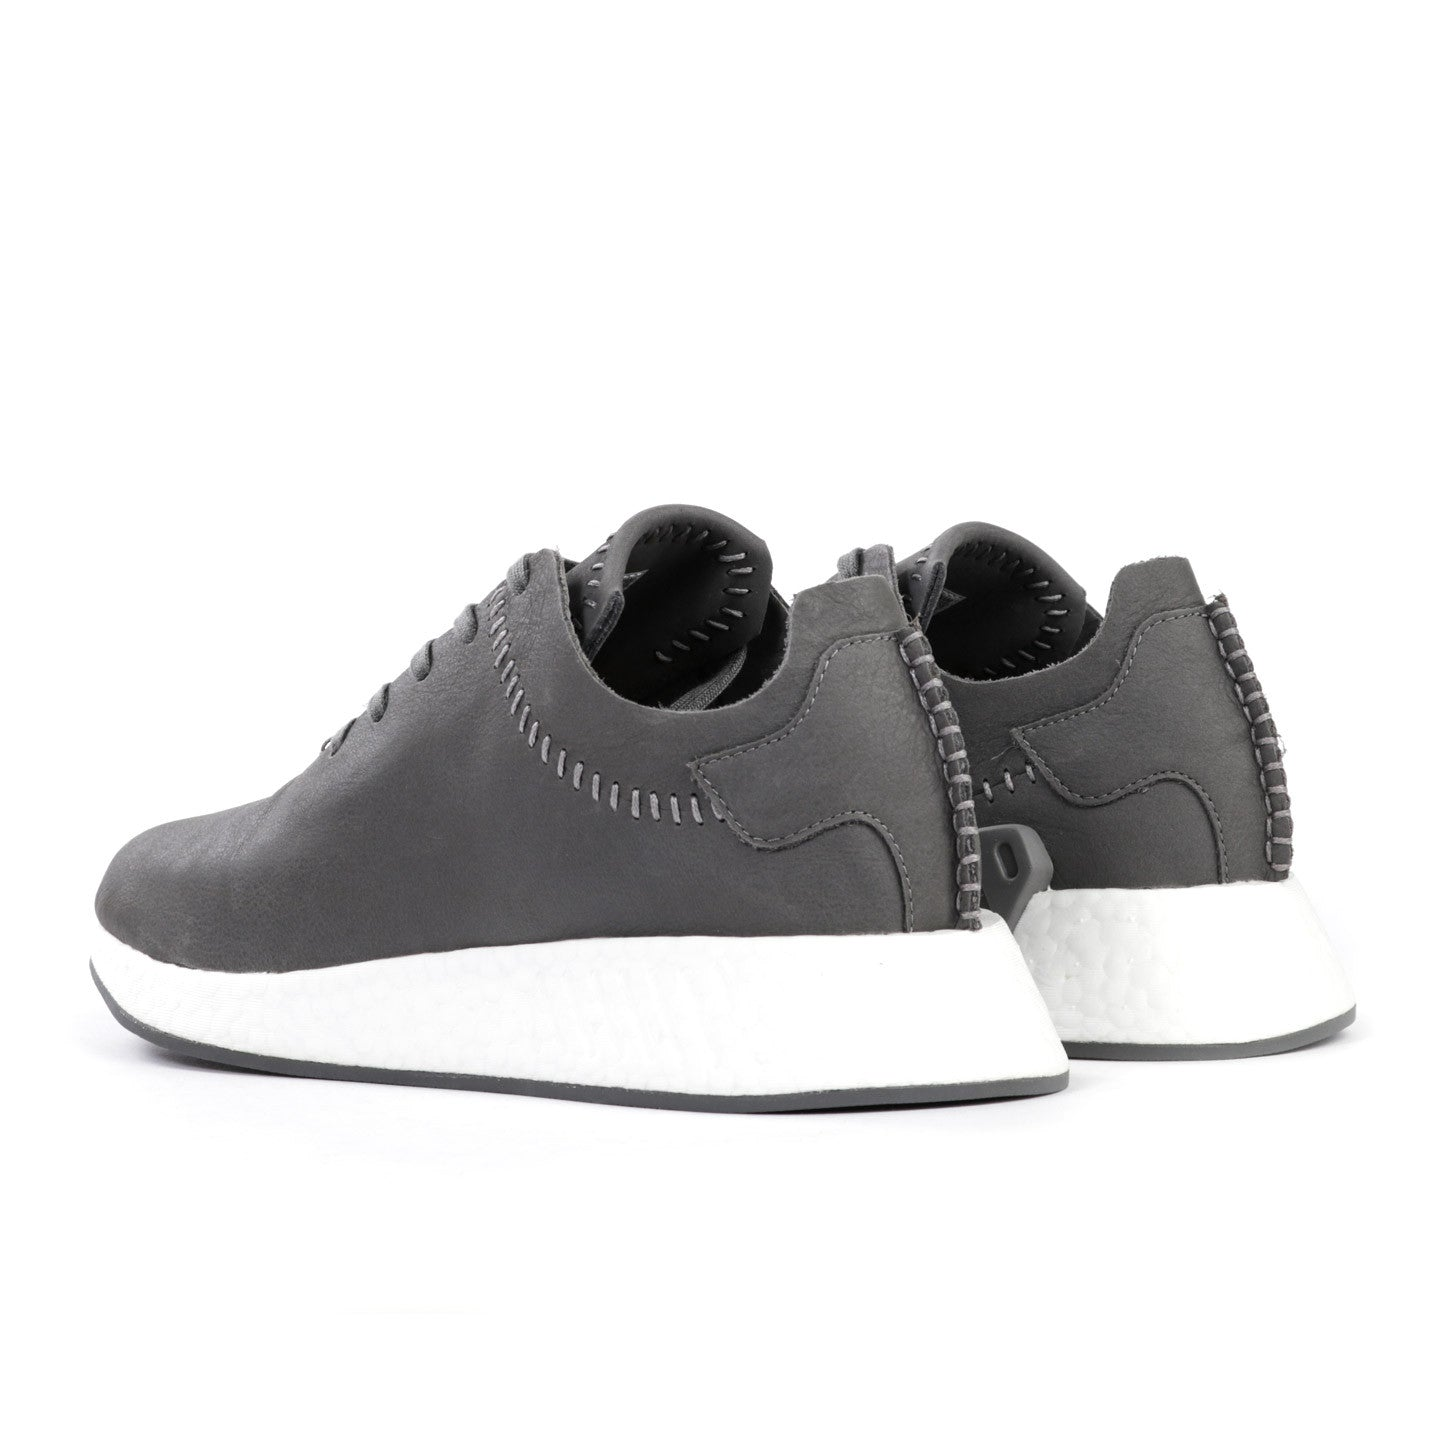 ADIDAS ORIGINALS BY WING + HORNS NMD R2 LEATHER ASH GREY